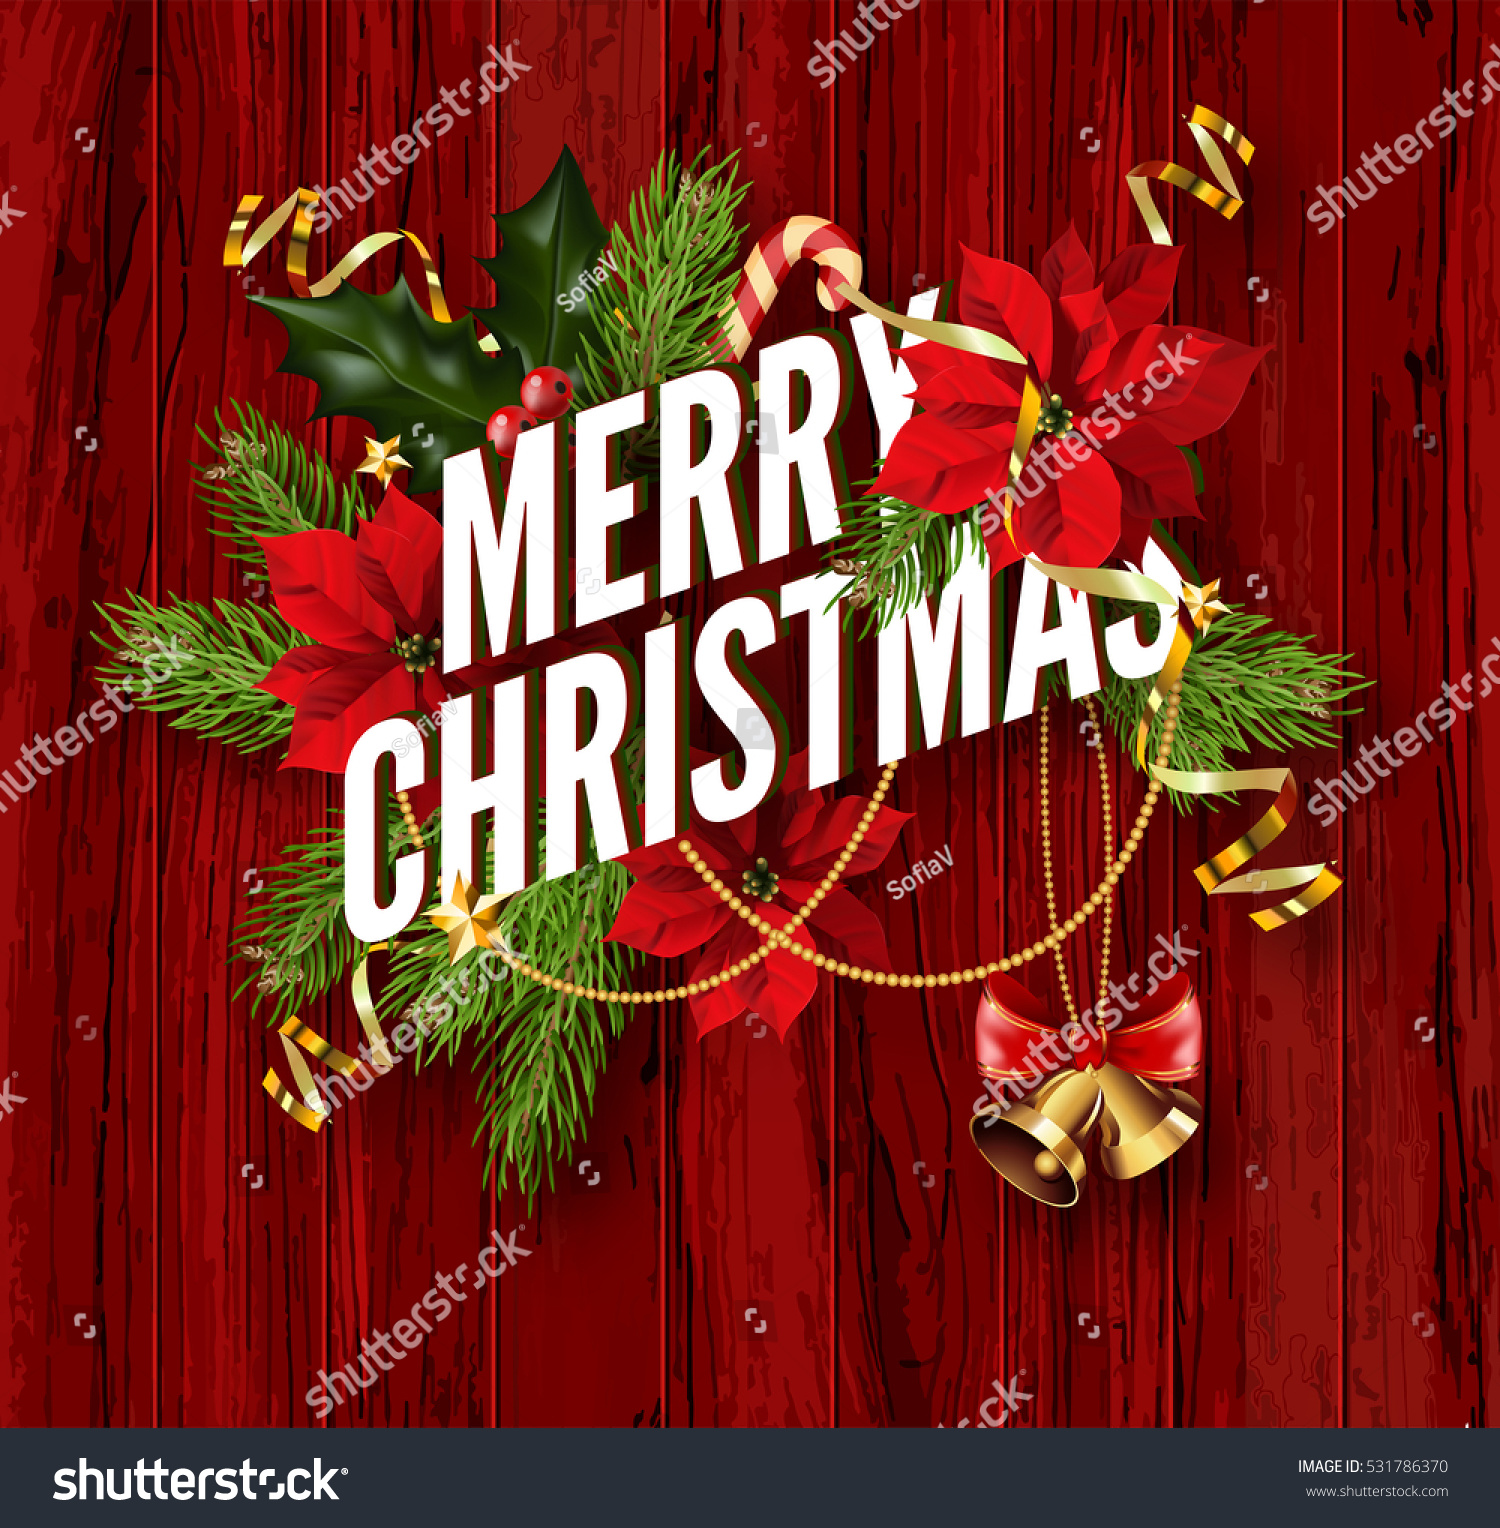 Merry Christmas Greeting Card Template Design Stock Vector Royalty